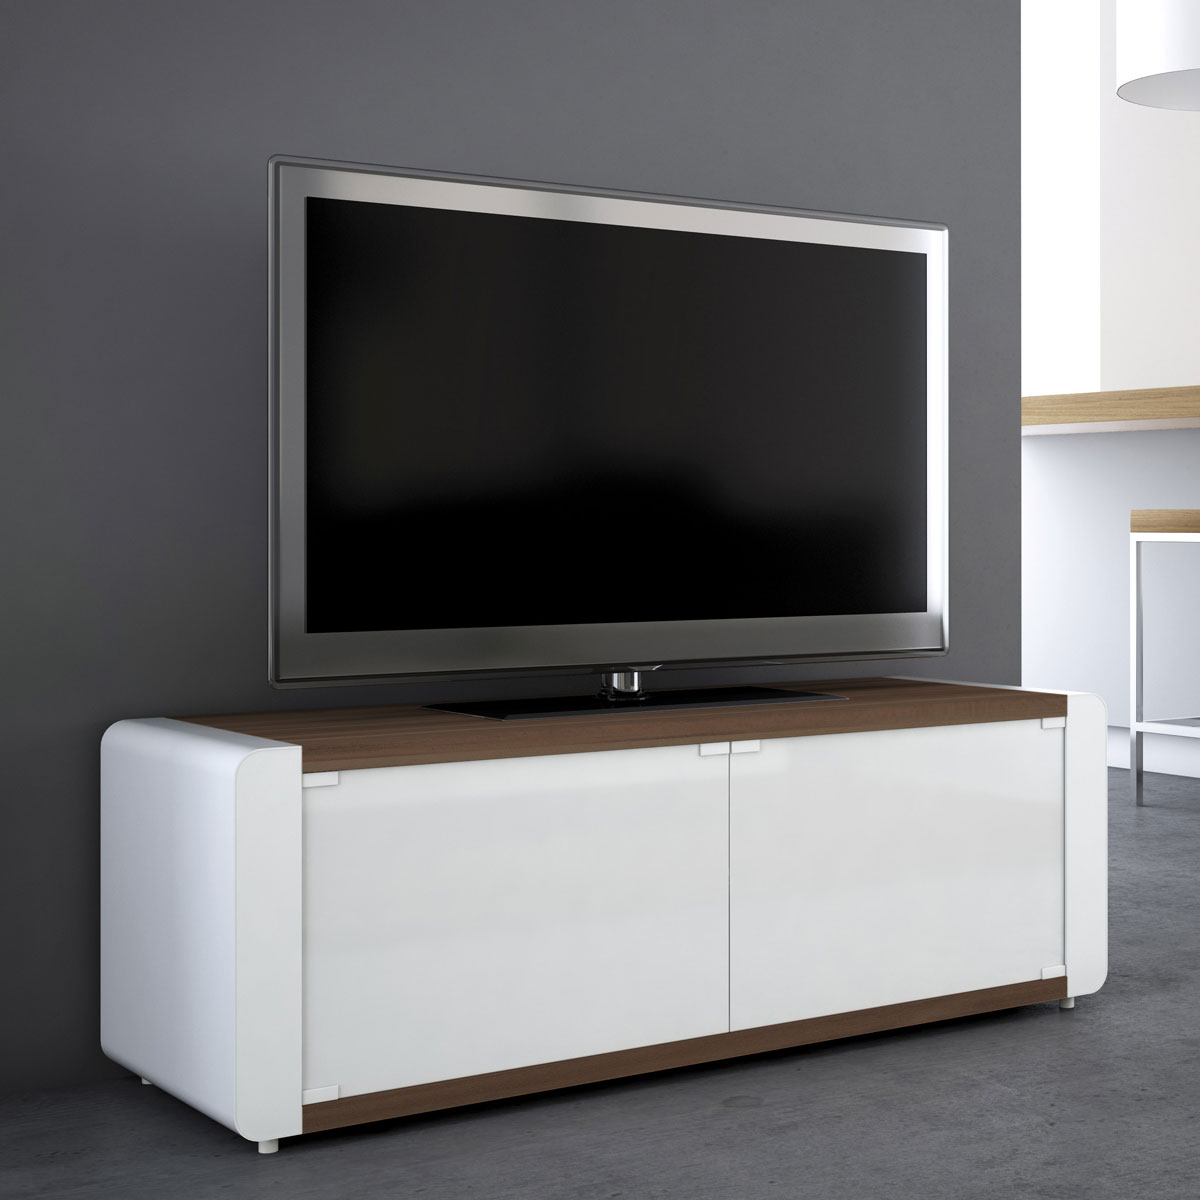 tv schrank rollbar inspirierendes design. Black Bedroom Furniture Sets. Home Design Ideas